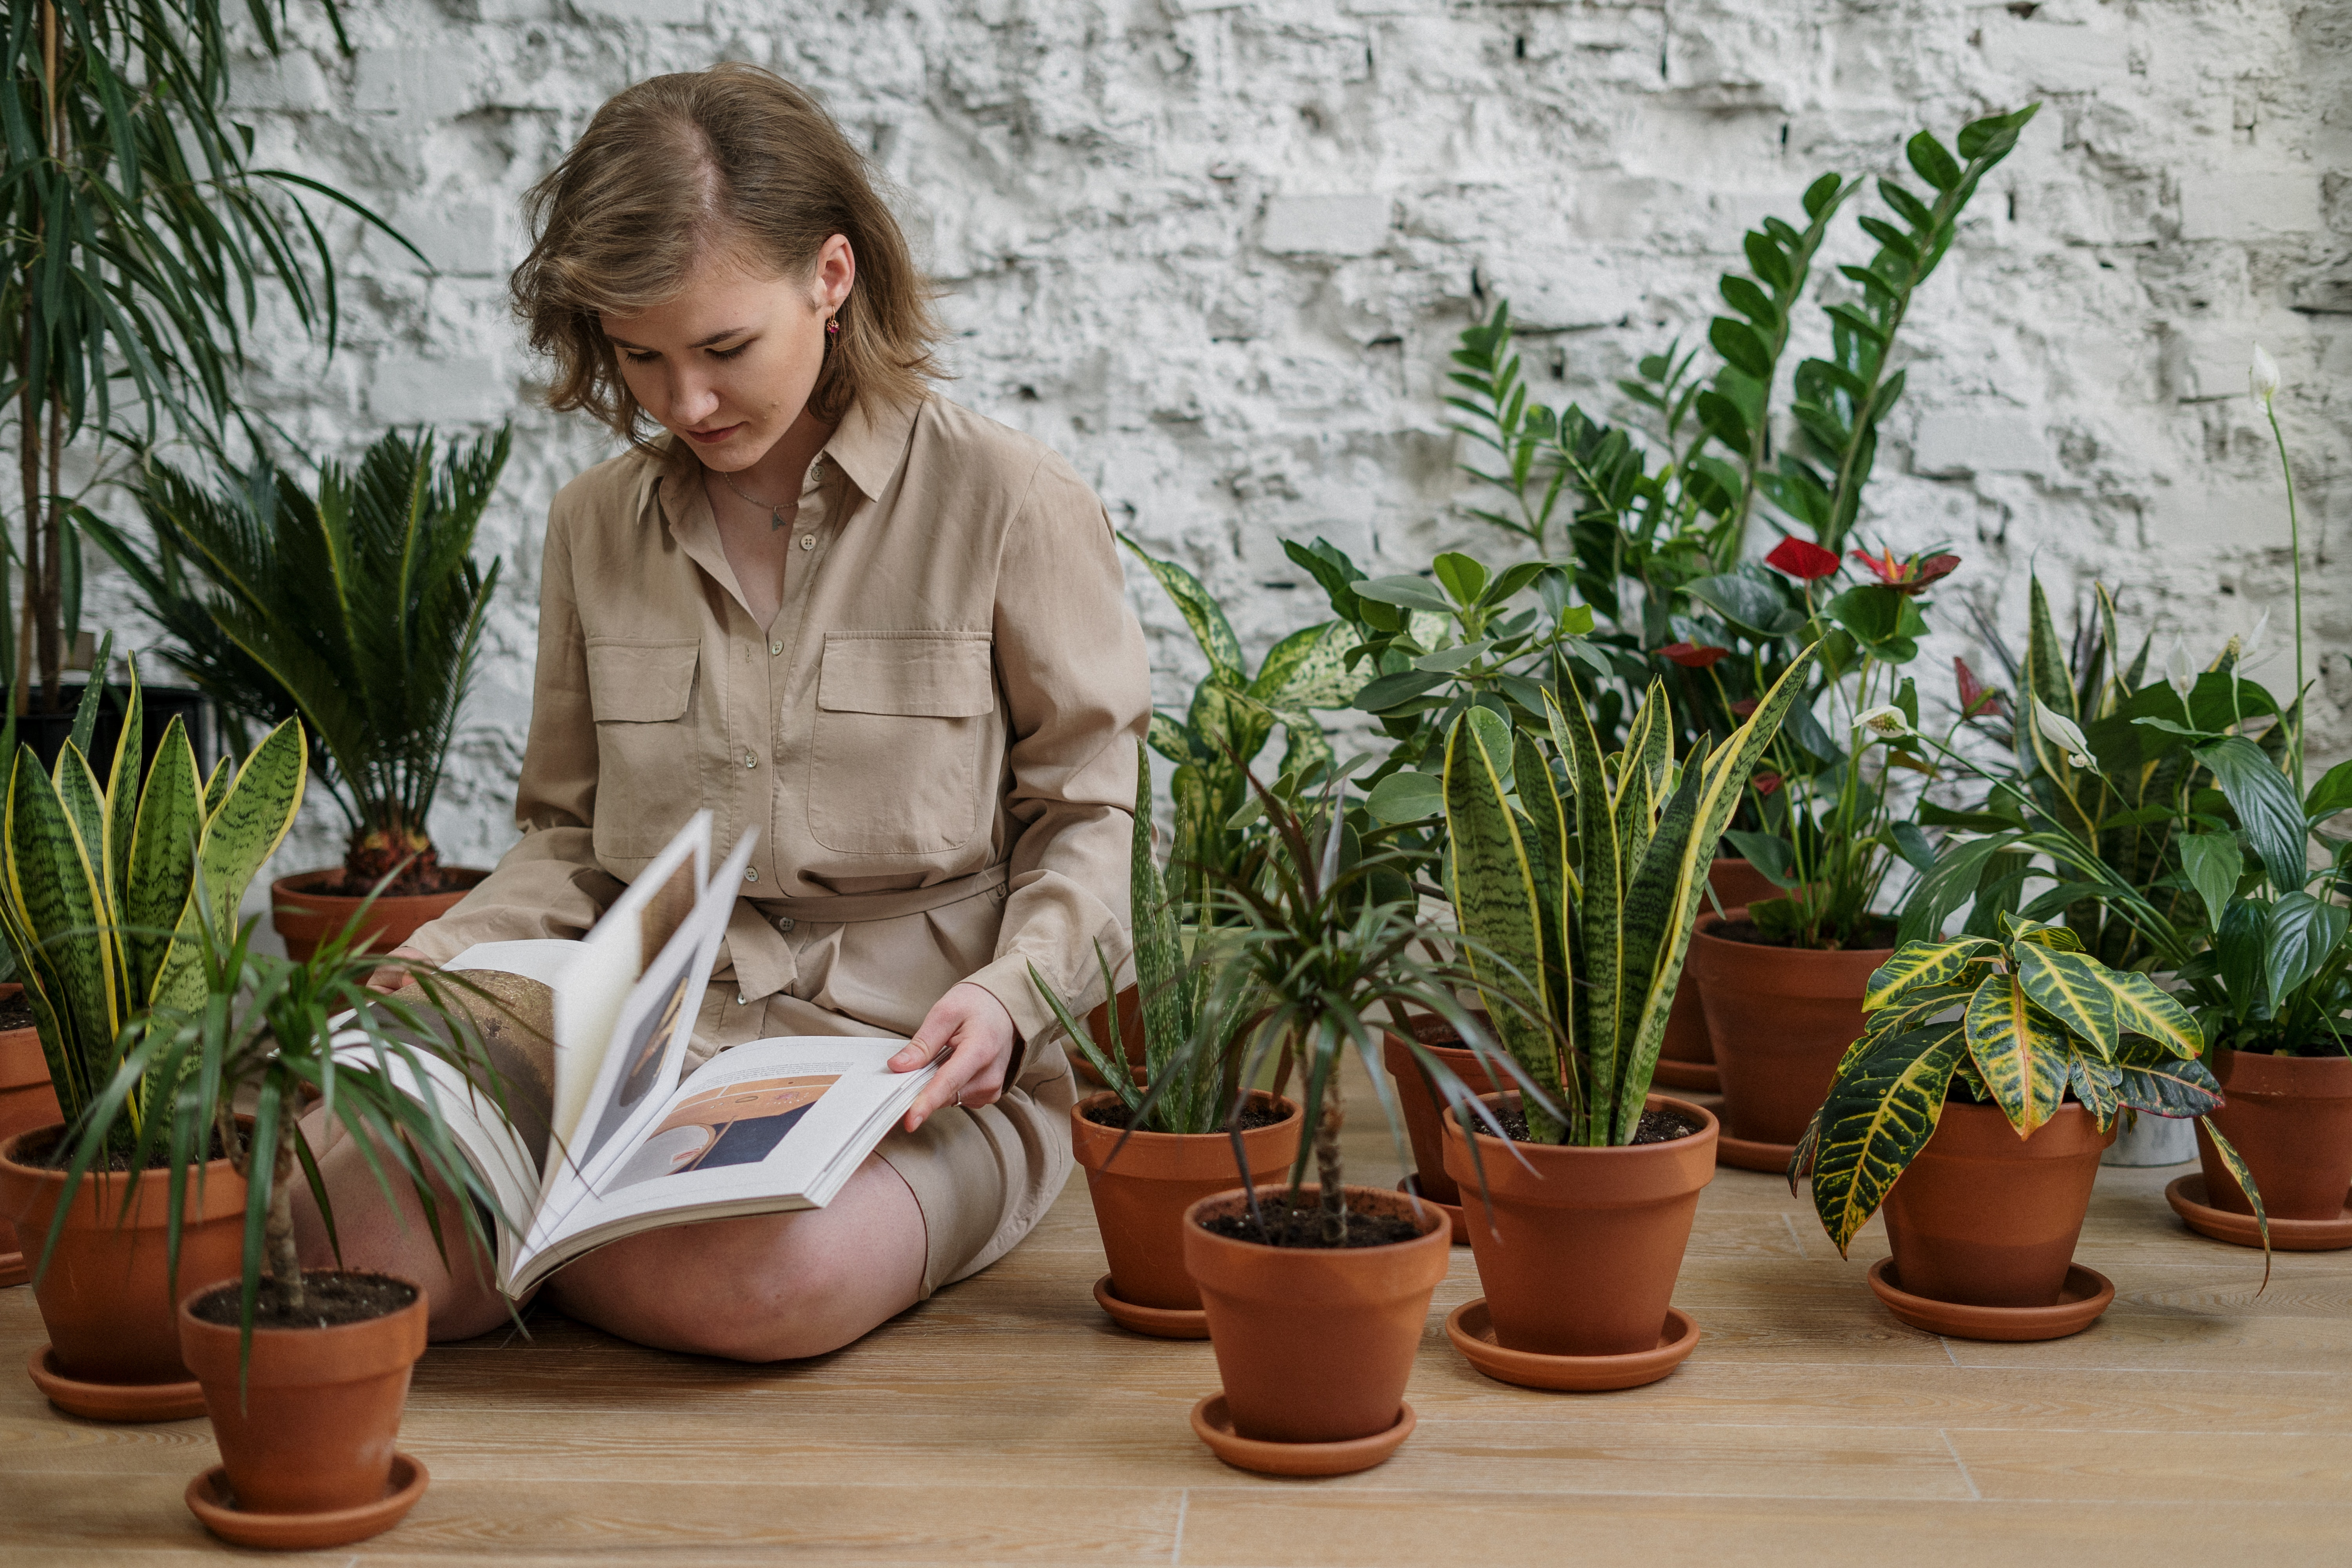 Girl reading a book while she cares for plants